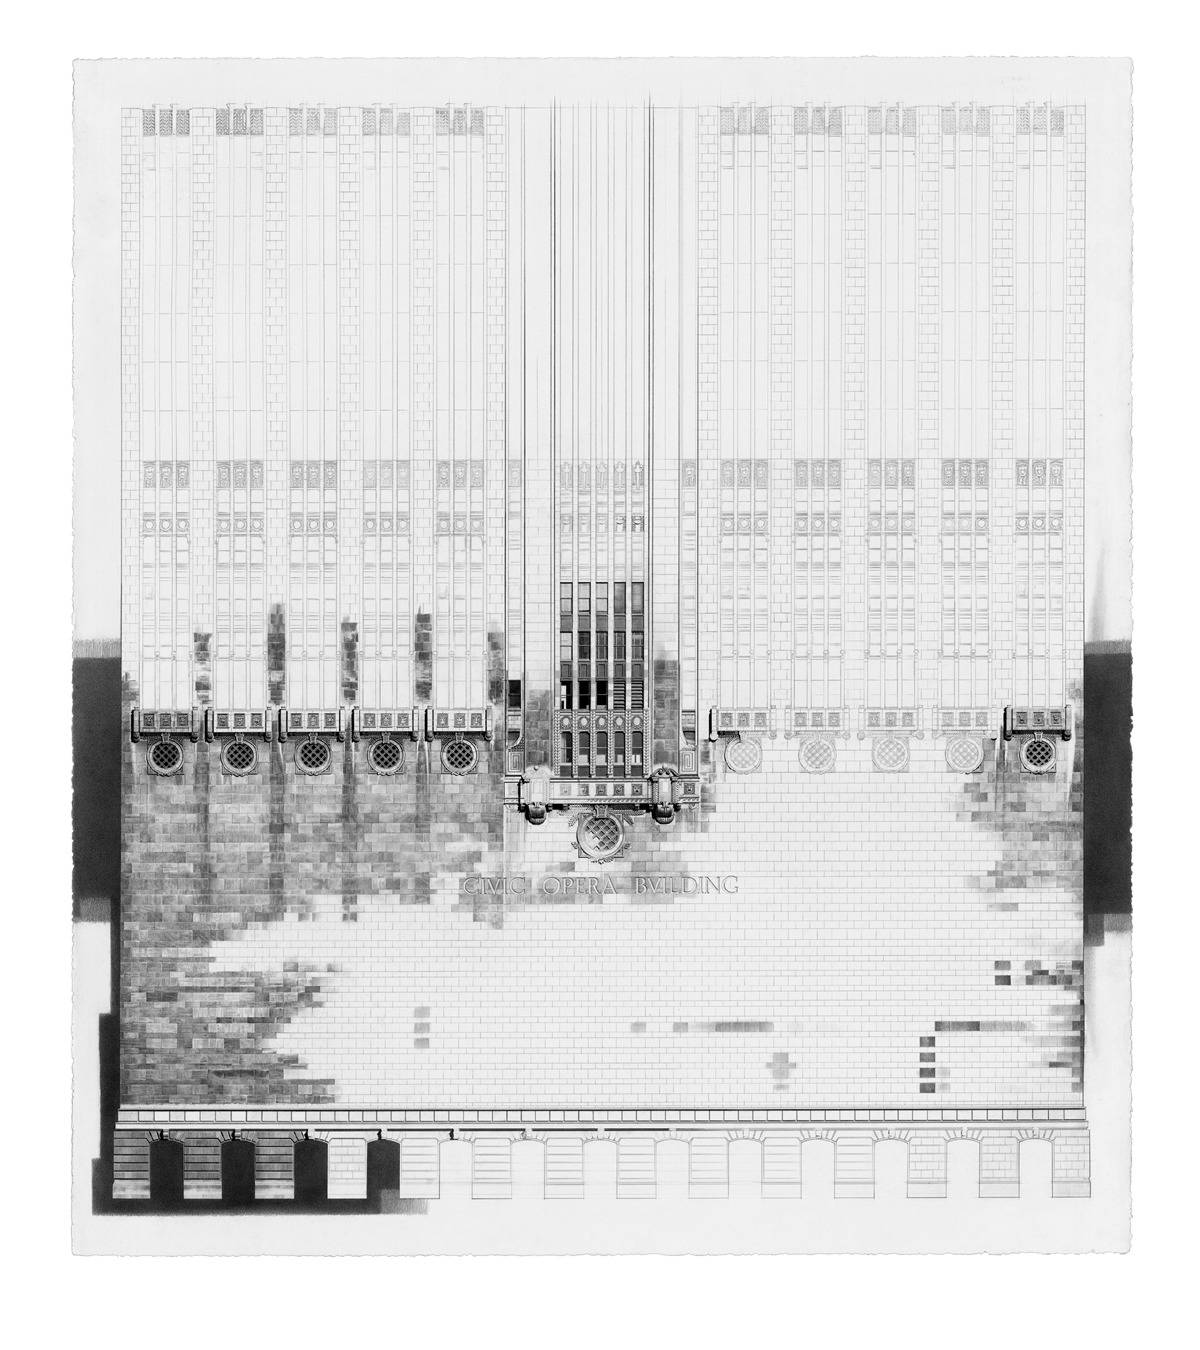 Jack Nixon of Wilmette has a love for architecture and ornamental detail. He creates large-scale drawings of Chicago architectural landmarks like the Civic Opera House.